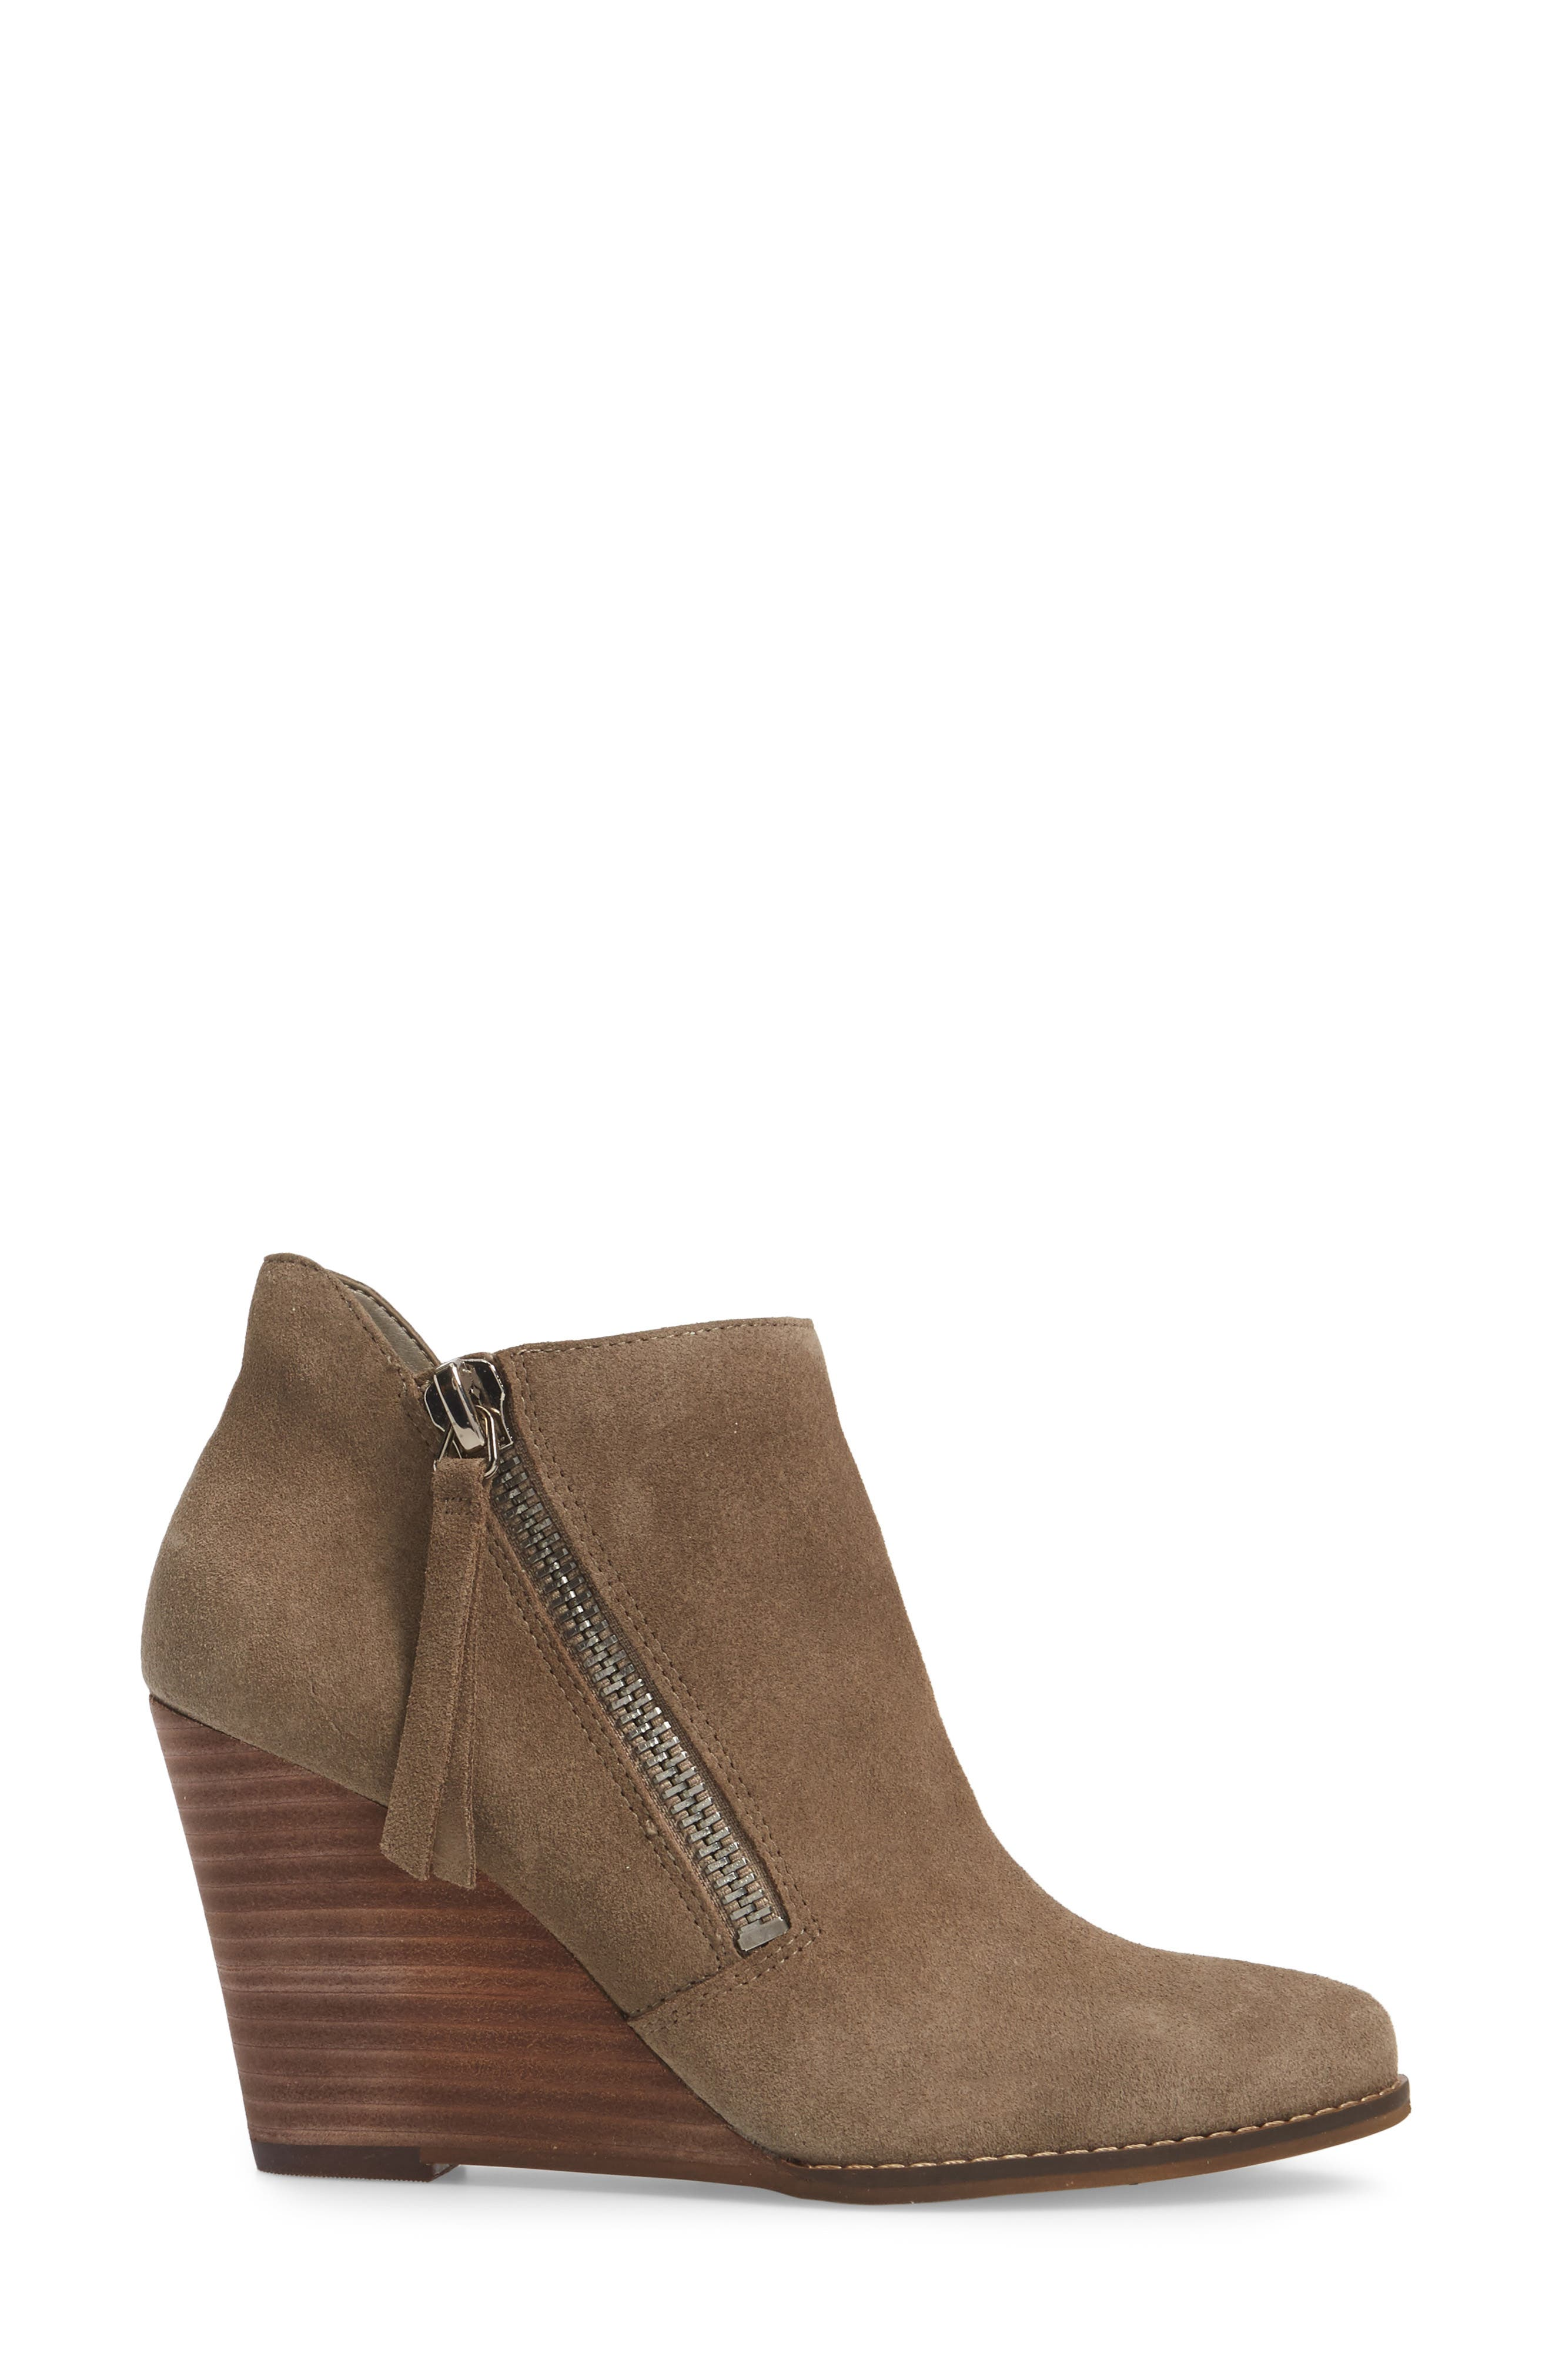 Carnivela Wedge Bootie,                             Alternate thumbnail 3, color,                             Greyhound Suede